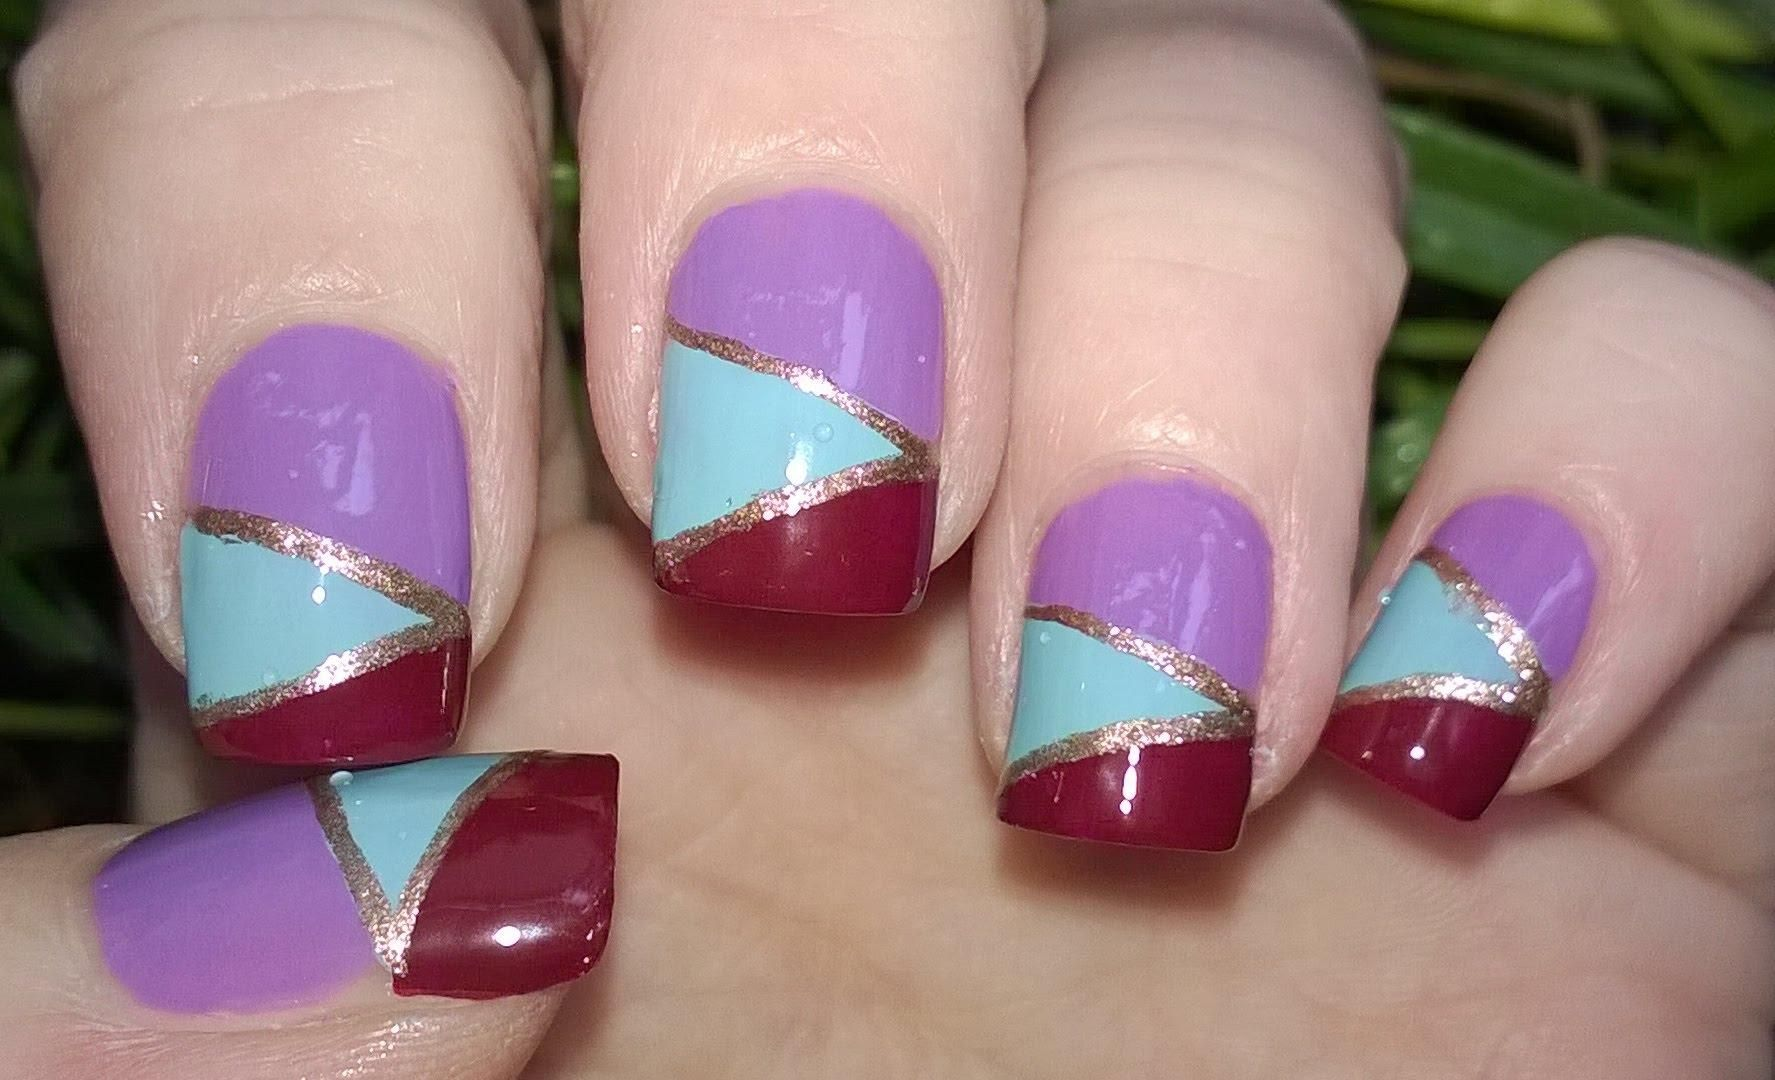 Nail Designs Without Tools Nail Designs Pinterest